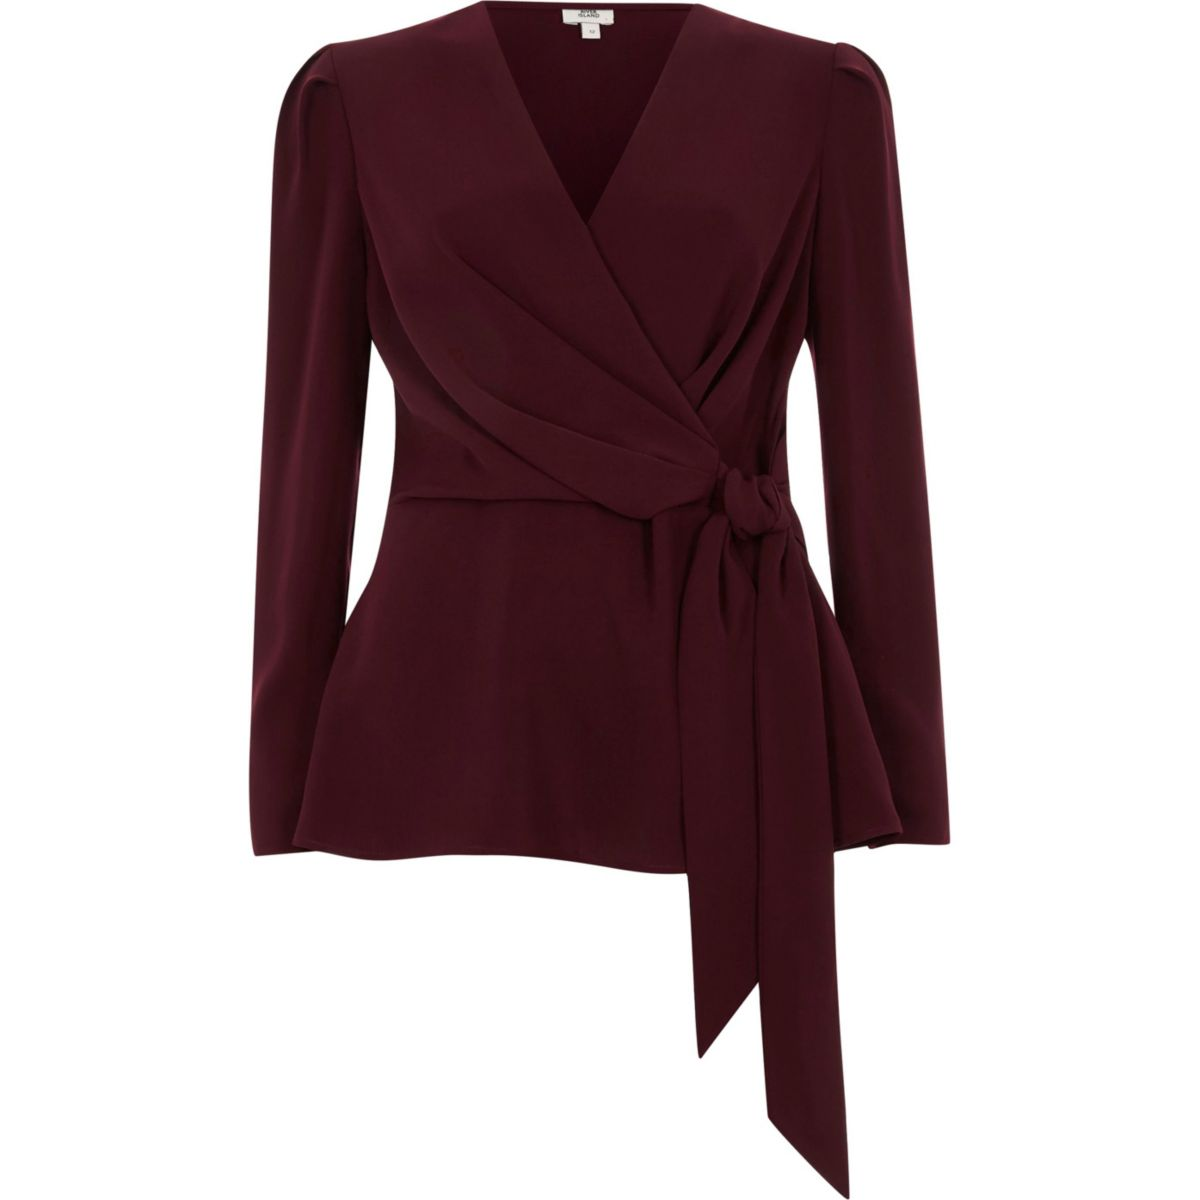 wrap blouse with tie photo - 1